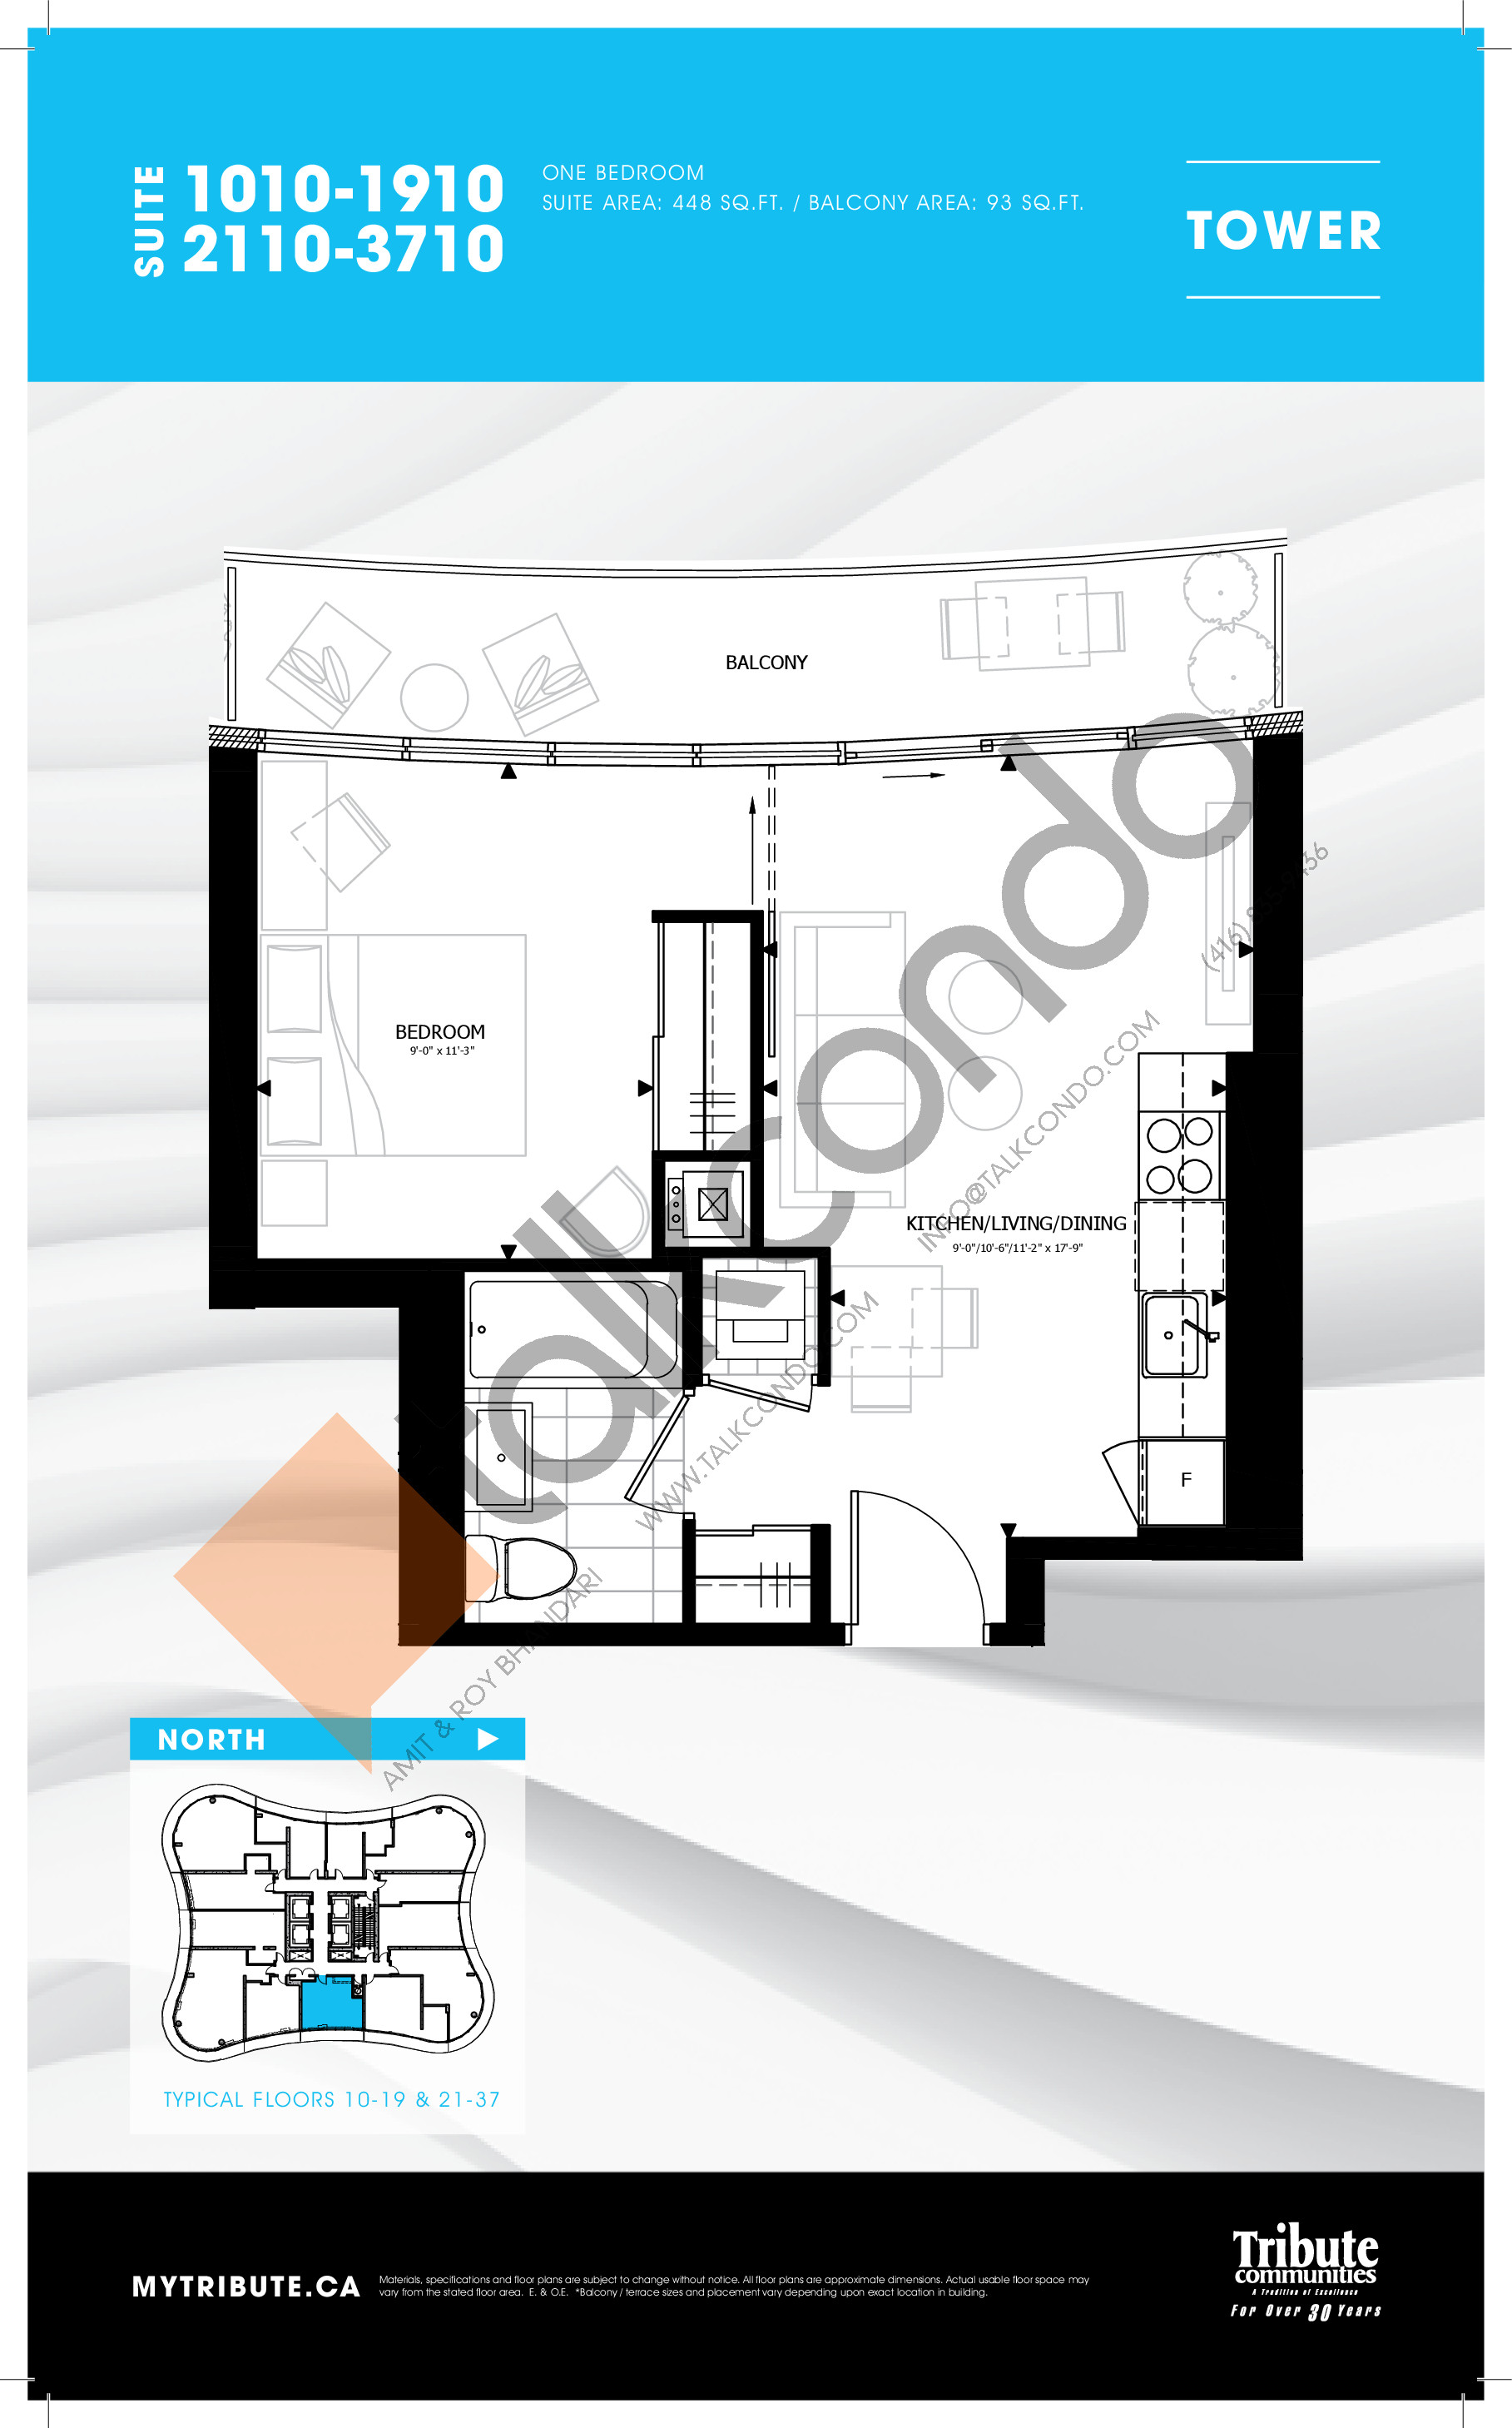 1010-1910 | 2110-3710 Floor Plan at Stanley Condos - 448 sq.ft